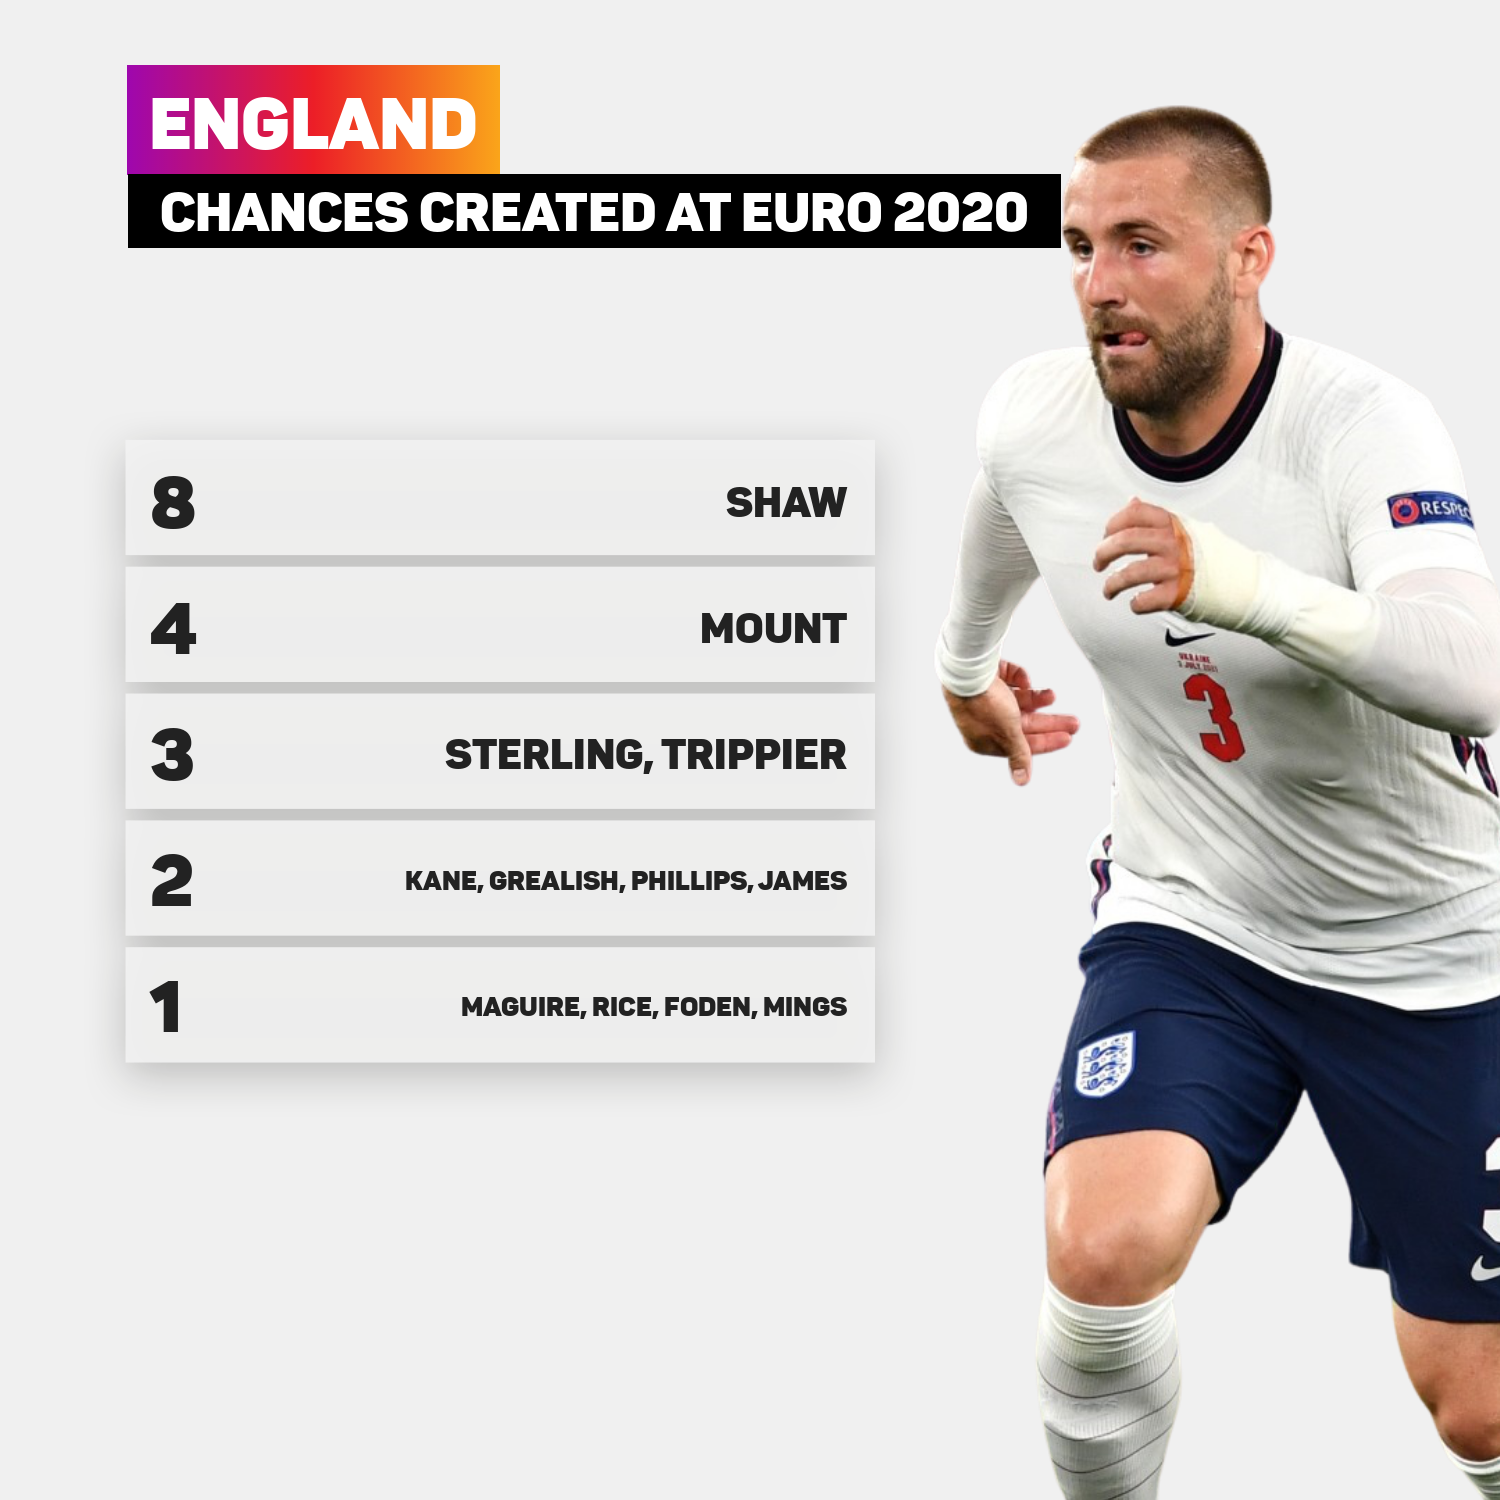 Luke Shaw has created the most chances for England